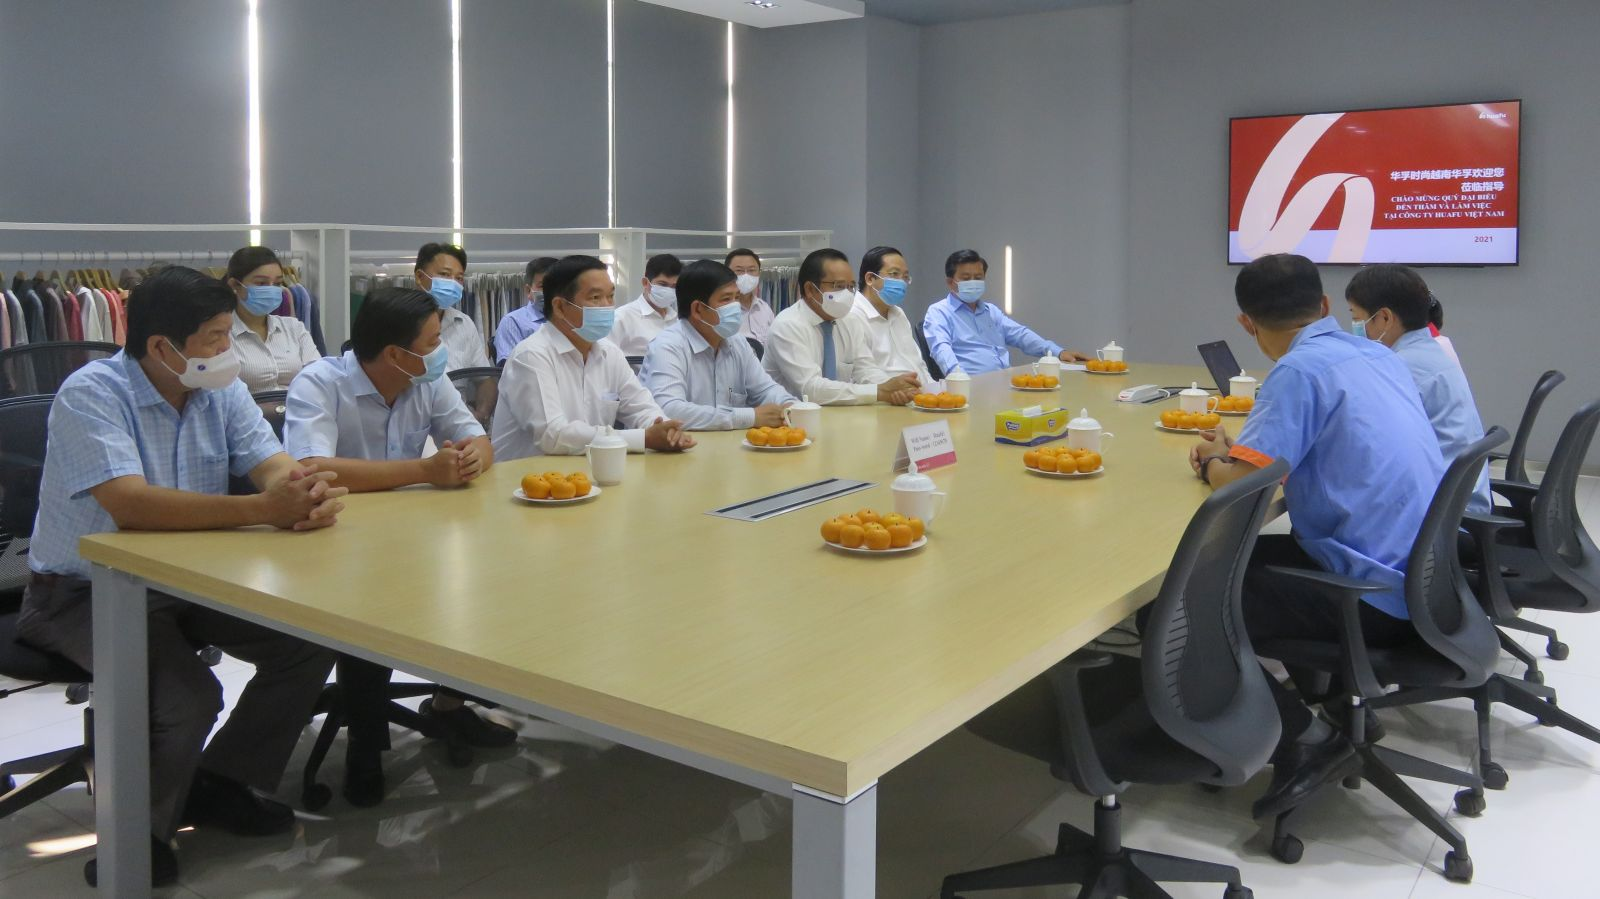 The delegation works, visits about production at Huafu Vietnam One Member Limited Company